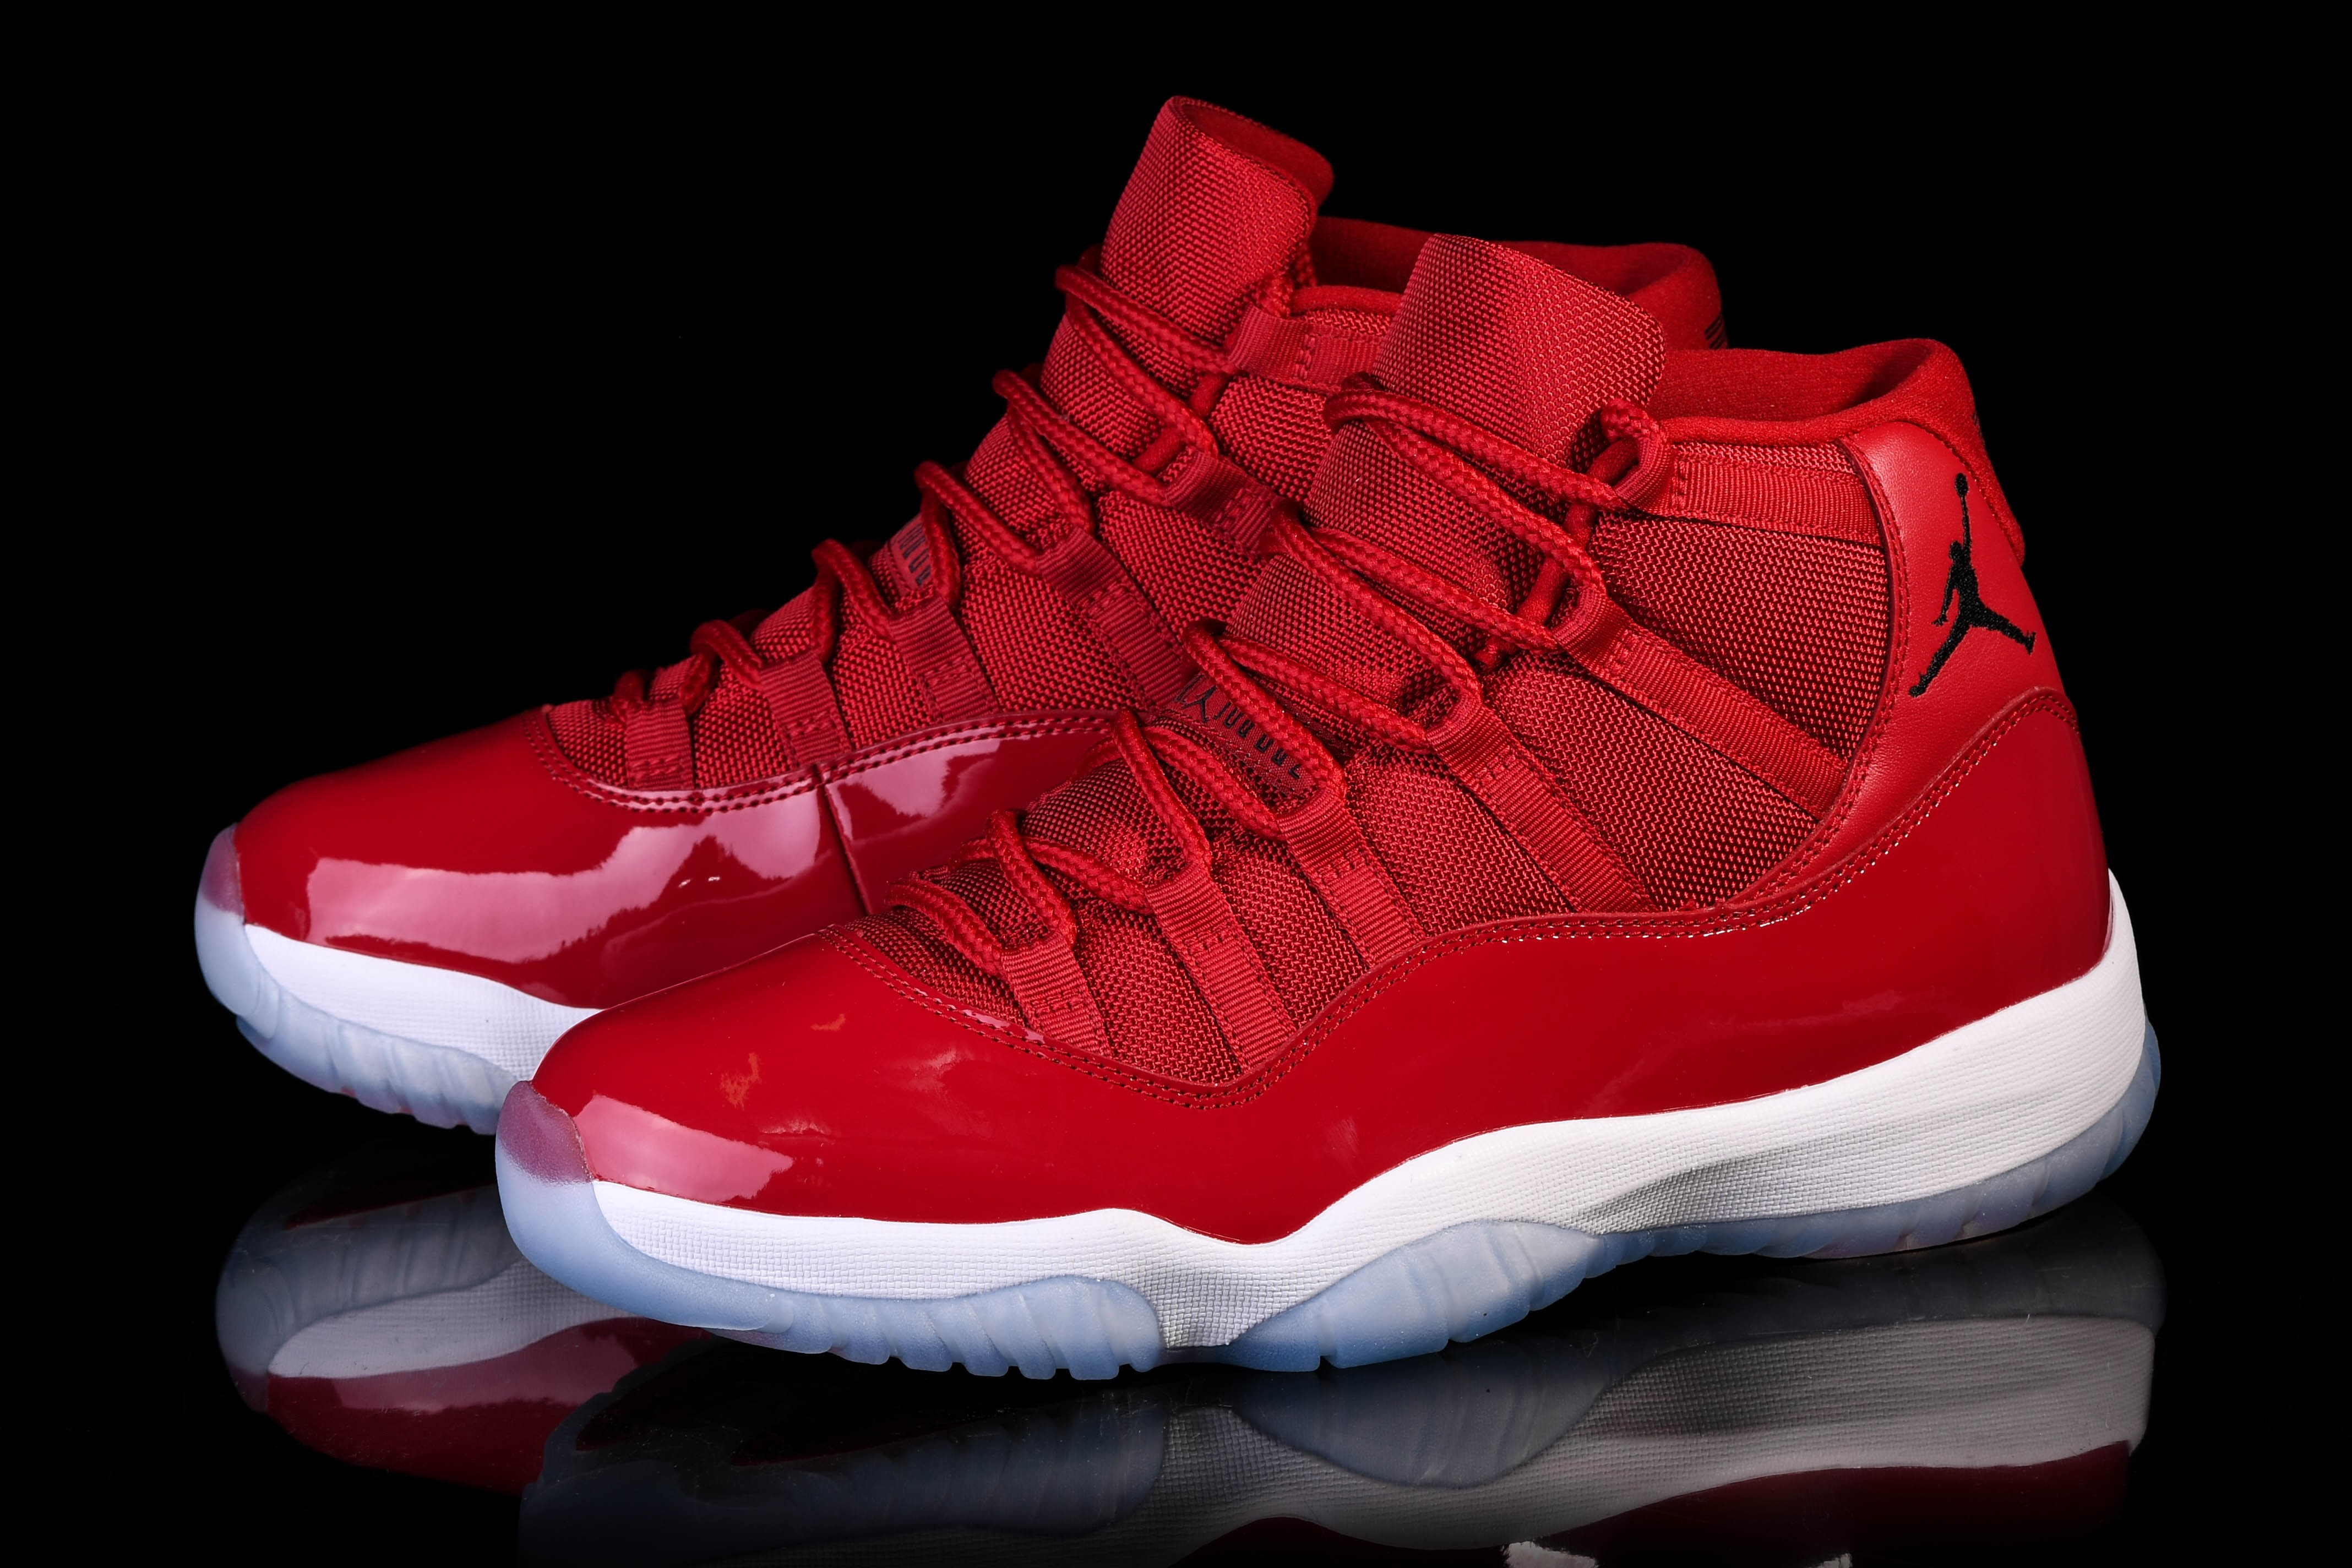 be907ed83006d1 NIKE AIR JORDAN 11 RETRO WIN LIKE 96 price €197.50